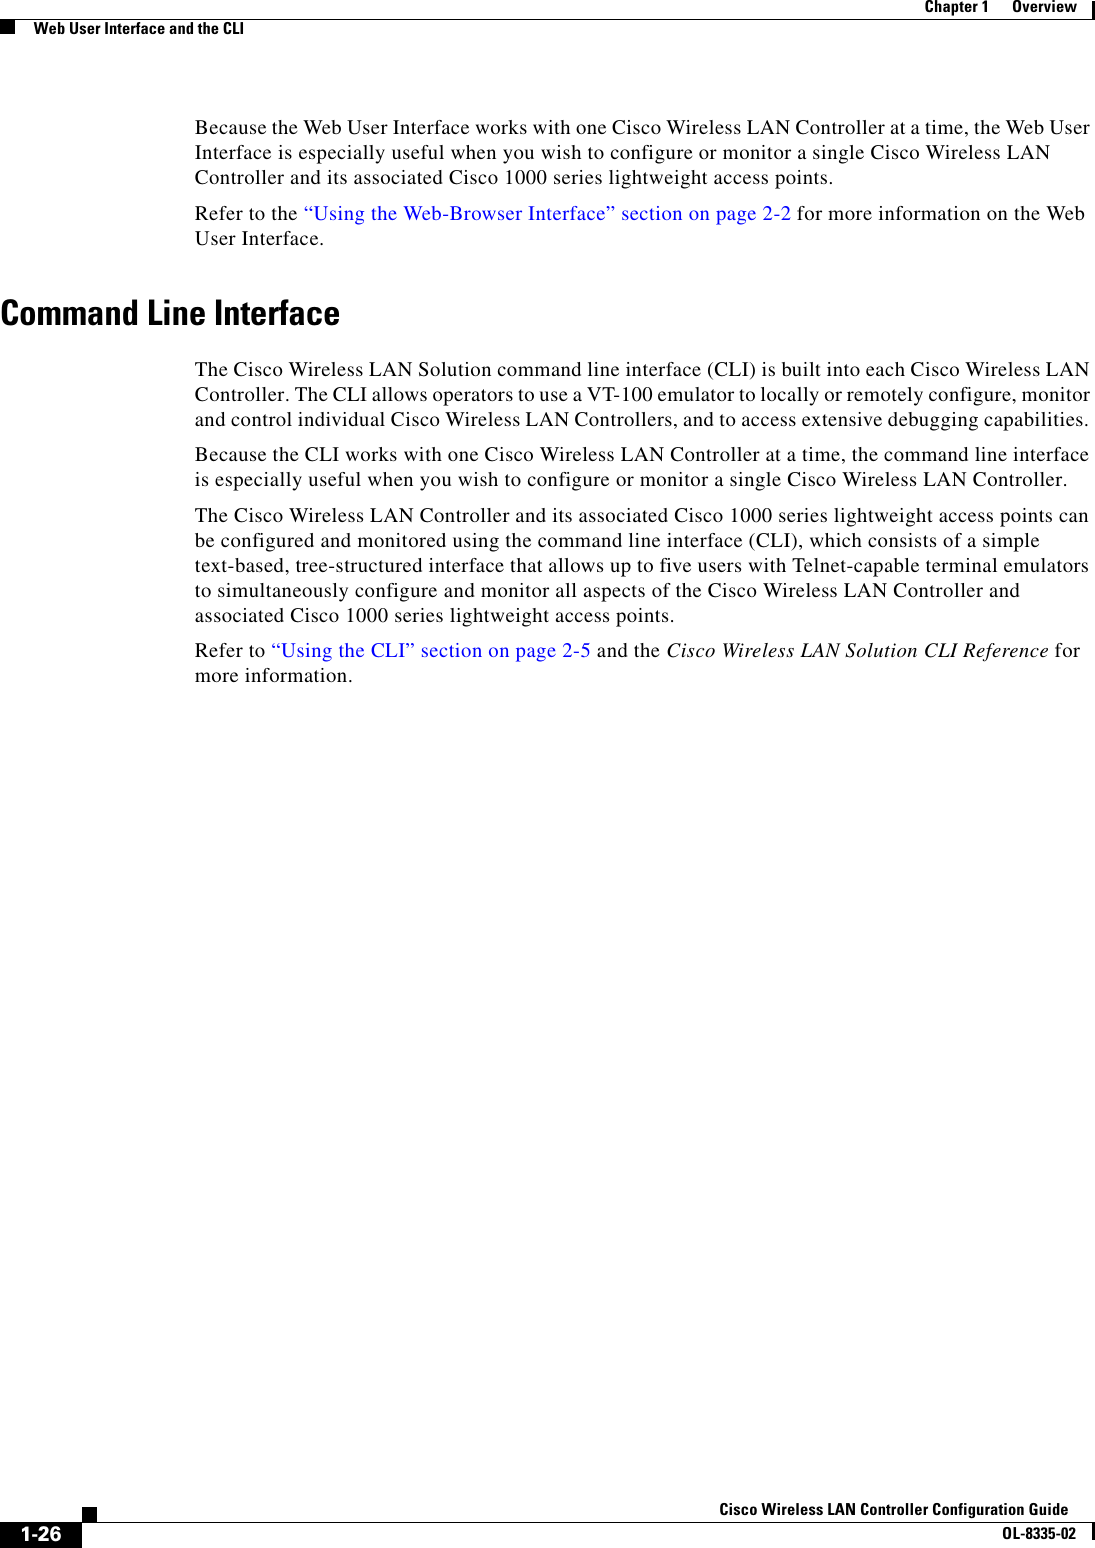 Cisco Systems 3 2 Users Manual